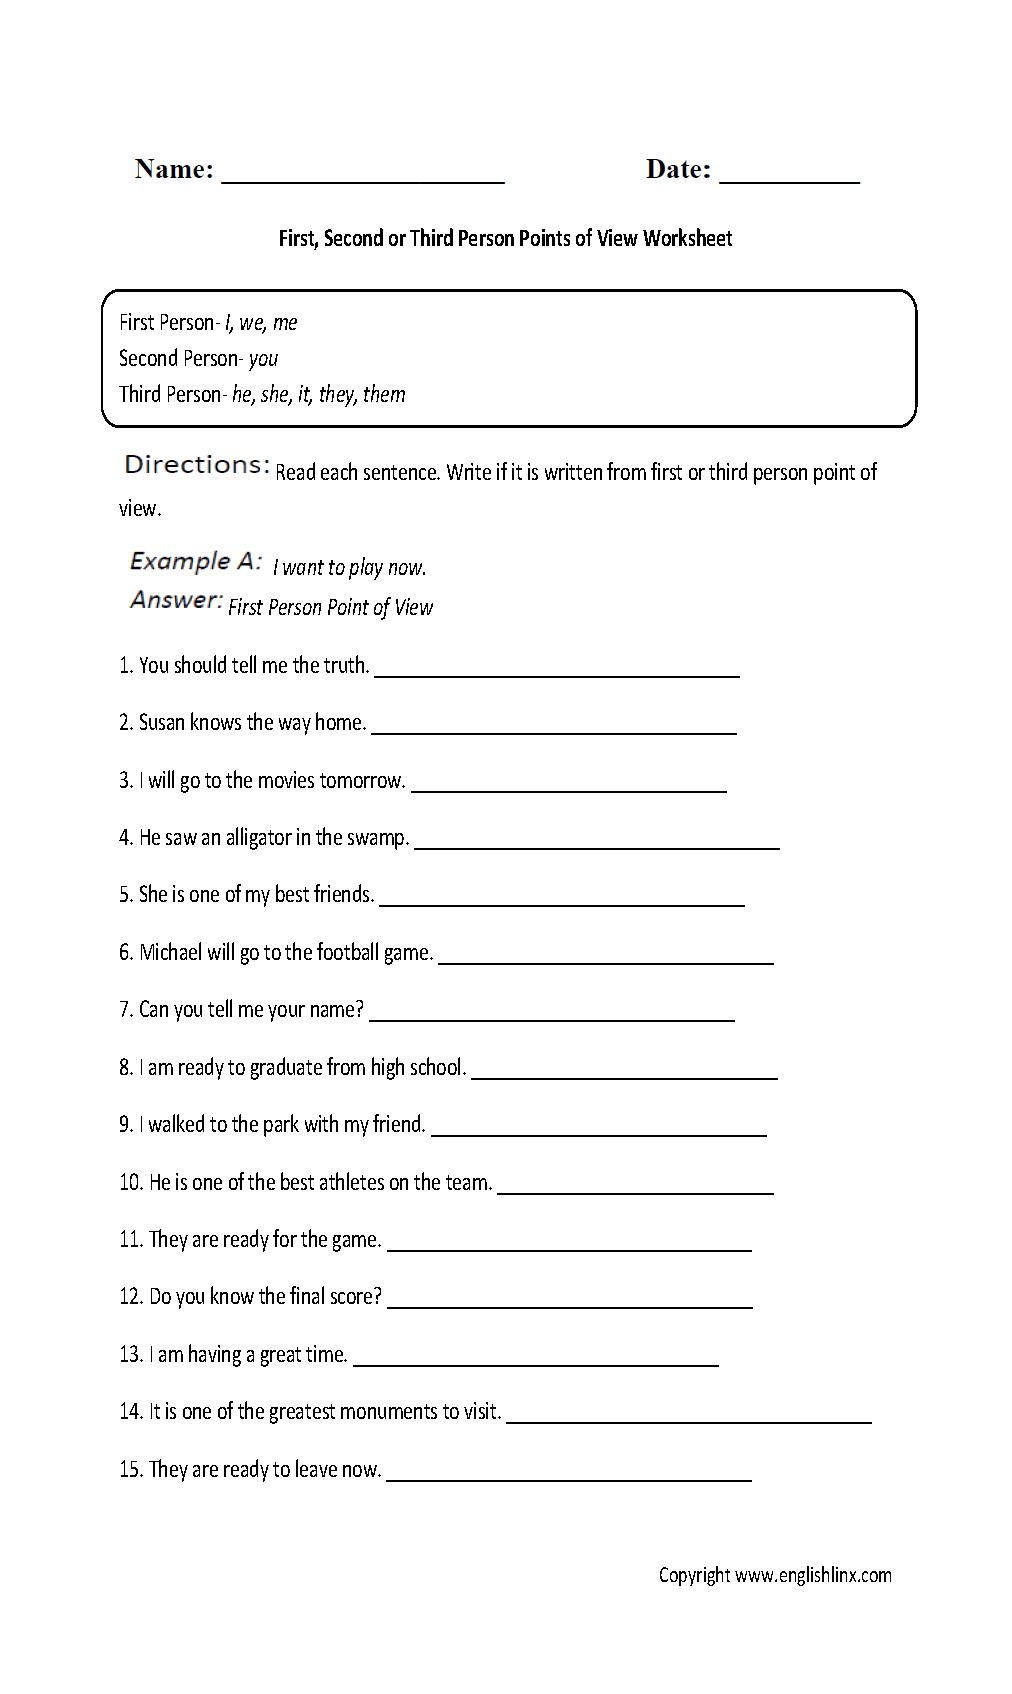 Weirdmailus  Scenic Englishlinxcom  Point Of View Worksheets With Entrancing Point Of View Worksheet With Breathtaking Prentice Hall Biology Worksheet Answers Also Cursive Alphabet Worksheets Free Printable In Addition Math Practice Worksheets Th Grade And Elementary Teacher Worksheets As Well As Consumers And Producers Worksheets Additionally All Word Family Worksheets From Englishlinxcom With Weirdmailus  Entrancing Englishlinxcom  Point Of View Worksheets With Breathtaking Point Of View Worksheet And Scenic Prentice Hall Biology Worksheet Answers Also Cursive Alphabet Worksheets Free Printable In Addition Math Practice Worksheets Th Grade From Englishlinxcom